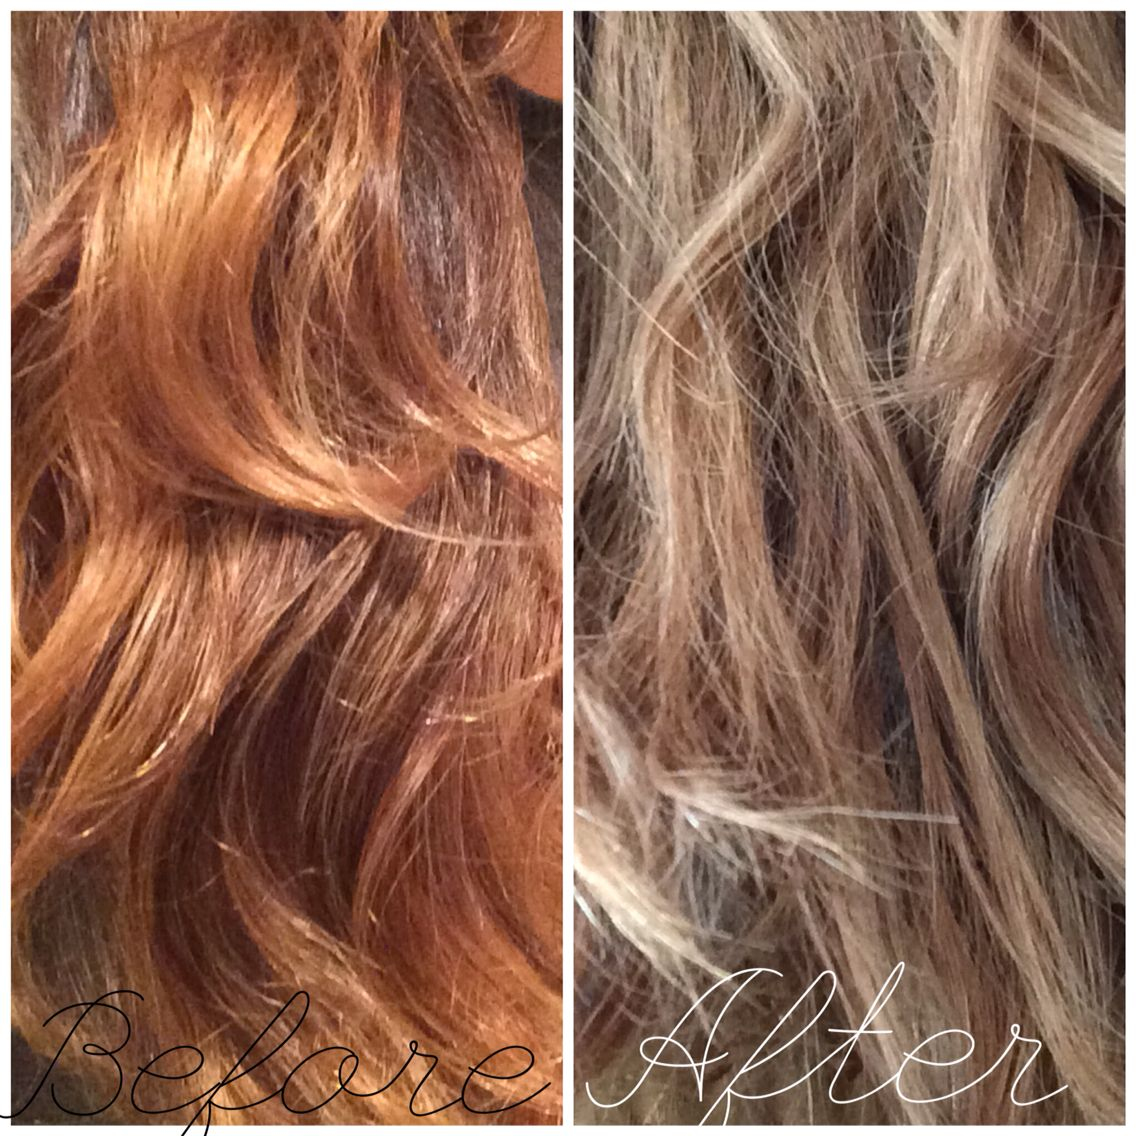 I Diy Toned My Hair With Wella T18 With 20 Volume Developer To